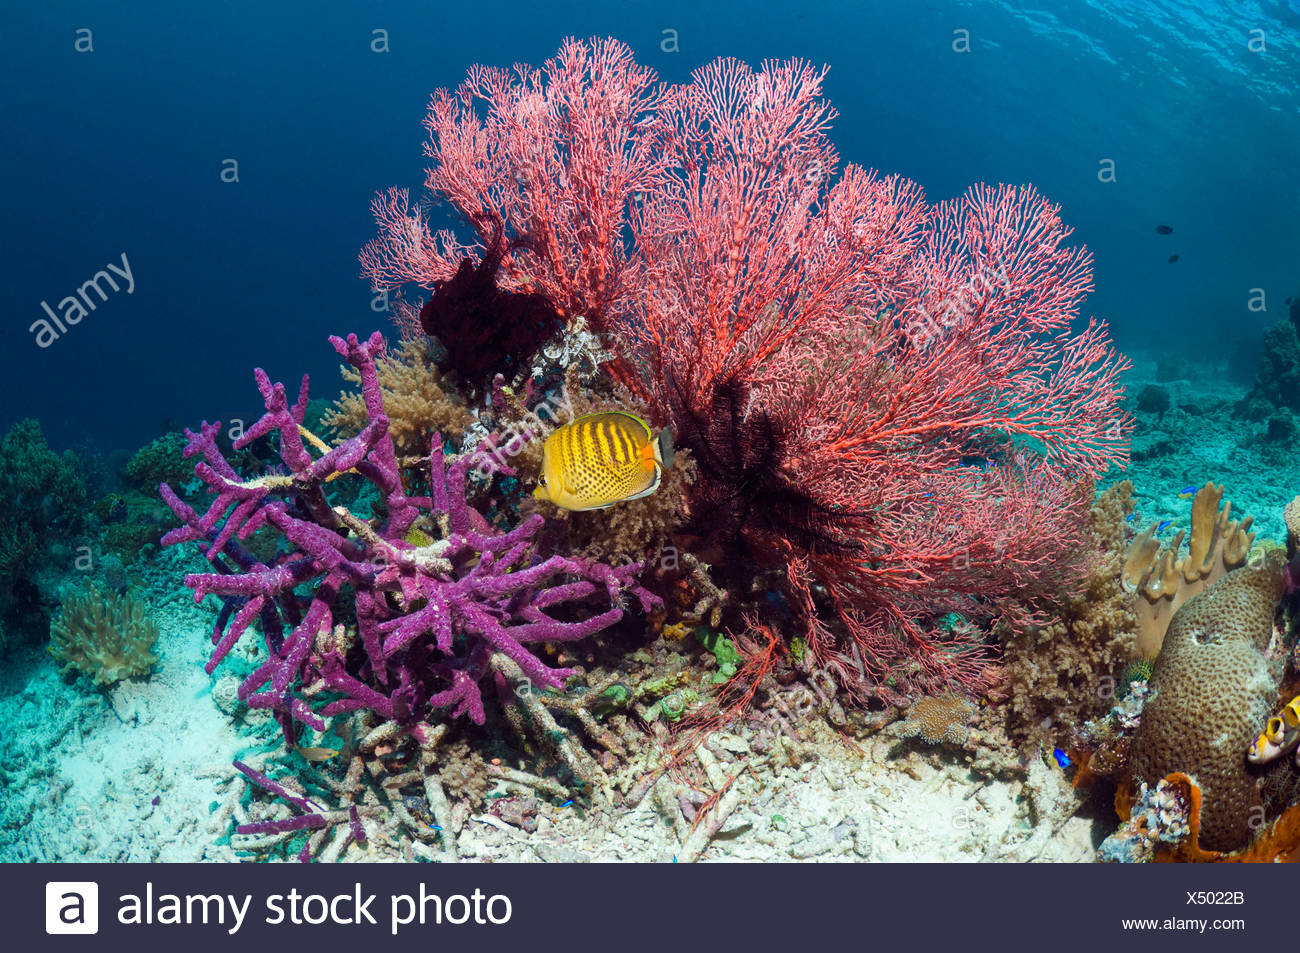 Spot-banded butterflyfish with gorgonian and encrusting purple sponge on coral reef Misool, Raja Empat, West Papua, Indonesia. - Stock Image